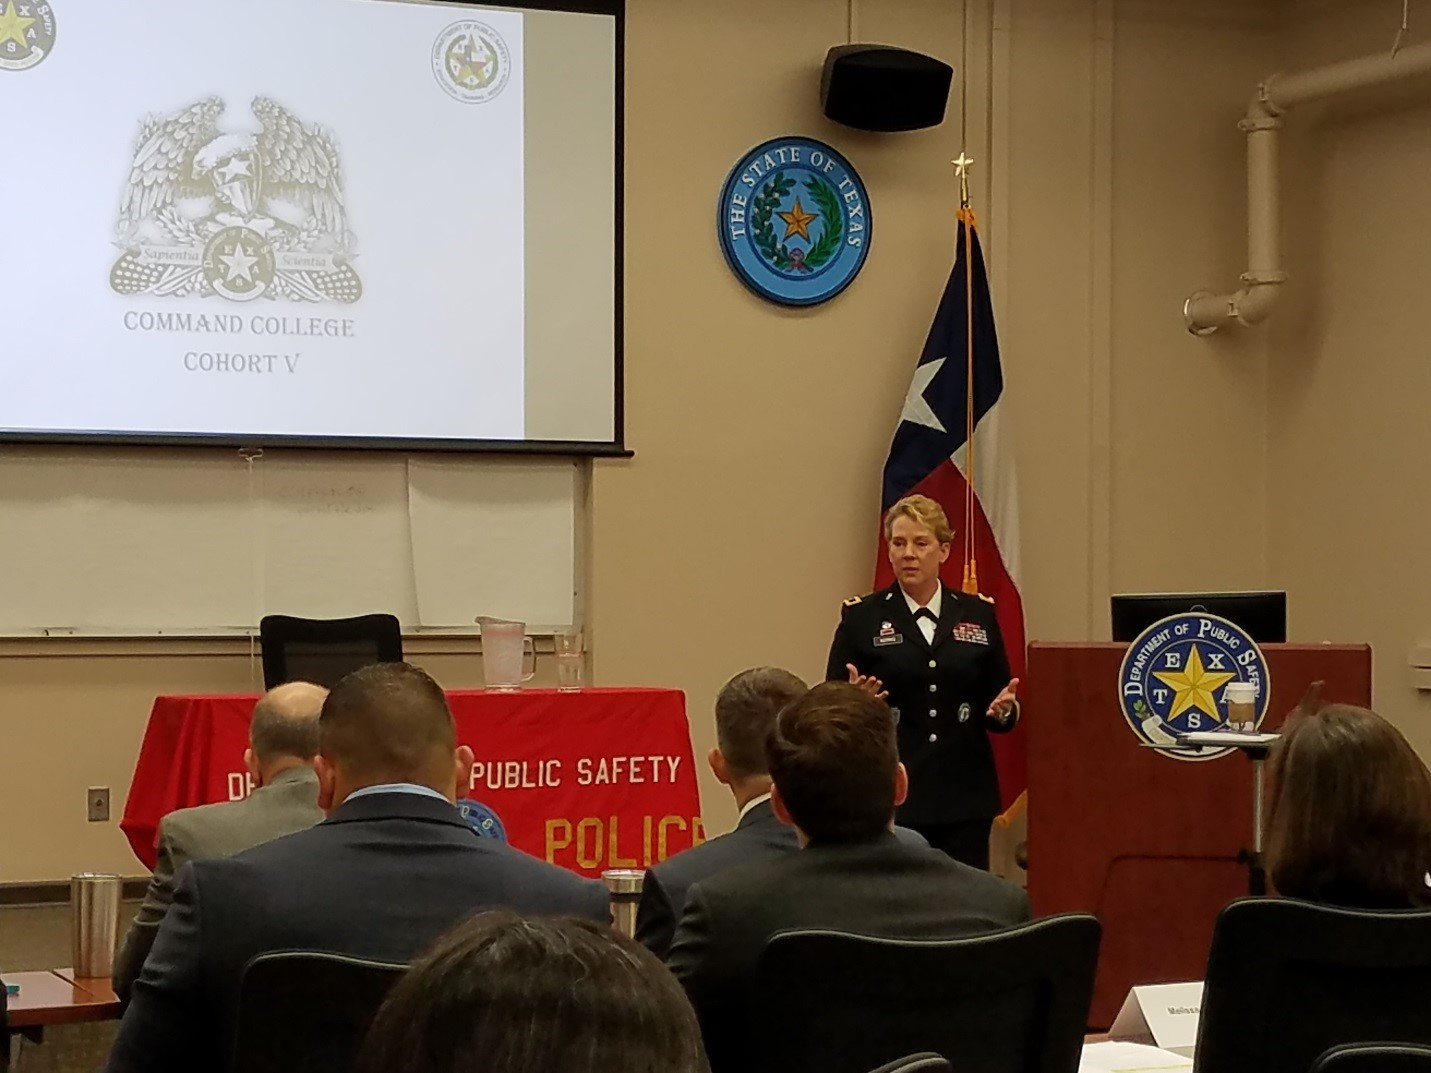 Brig. Gen. Tracy Norris, addresses the Texas Department of Public Safety Command College, Cohort V Class to prepare them for their culminating CAPSTONE event at the DPS Headquarters in Austin, Texas, March 8, 2017. The TXARNG and Texas DPS train together and support each other in domestic operations in order to better serve the citizens of Texas.